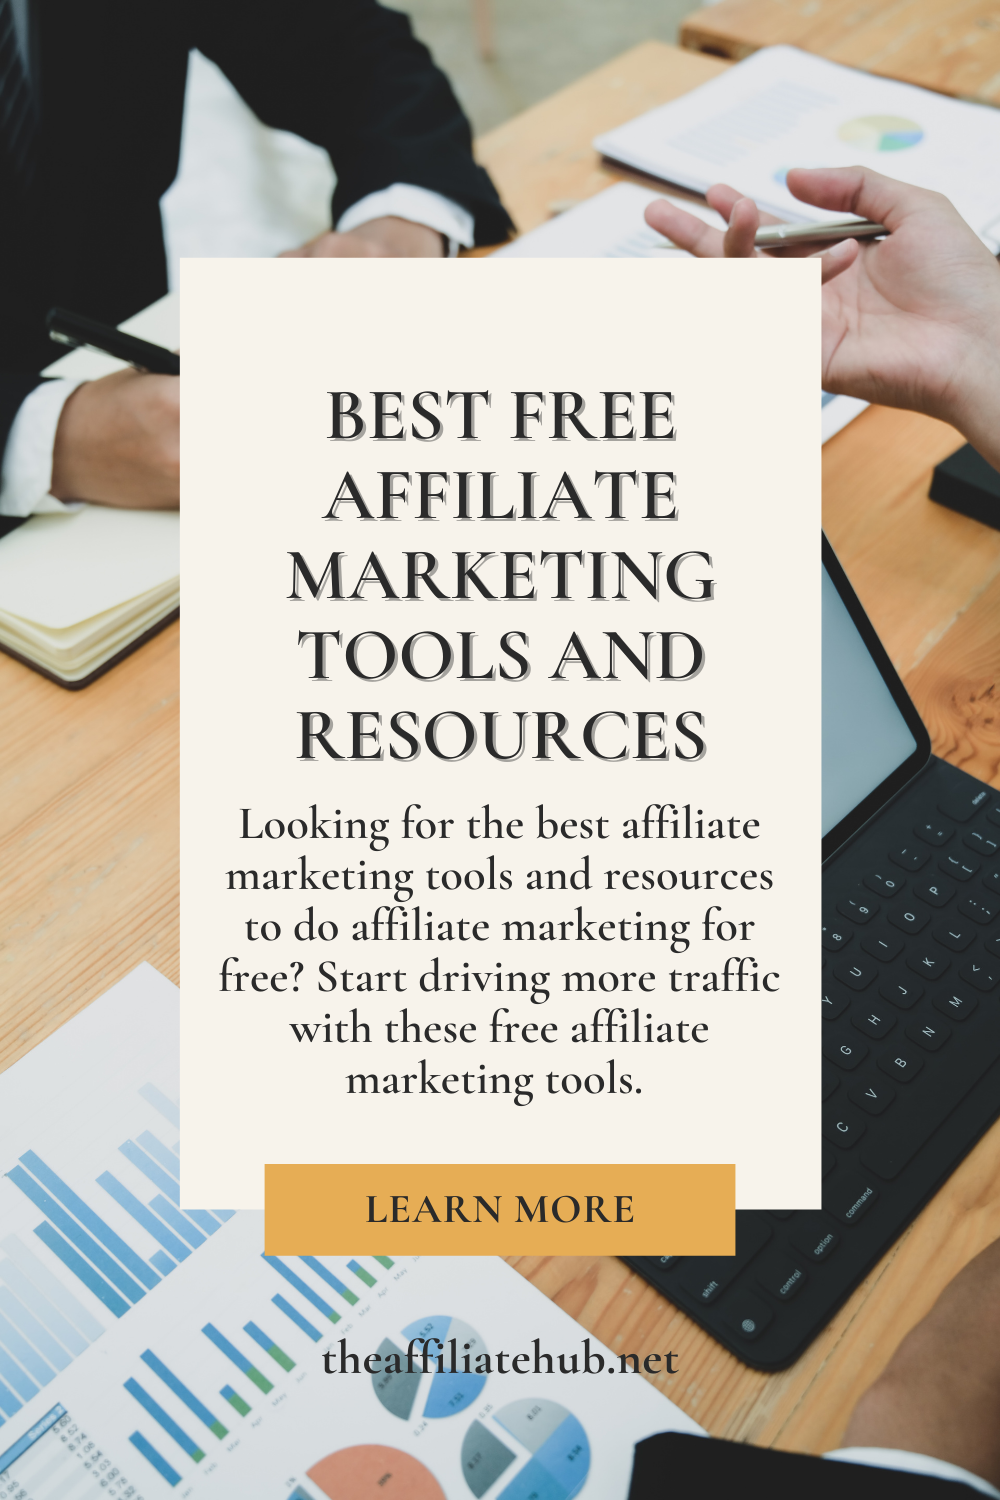 Best free affiliate marketing tools and resources - Best Free Affiliate Marketing Tools and Resources to Know in 2021